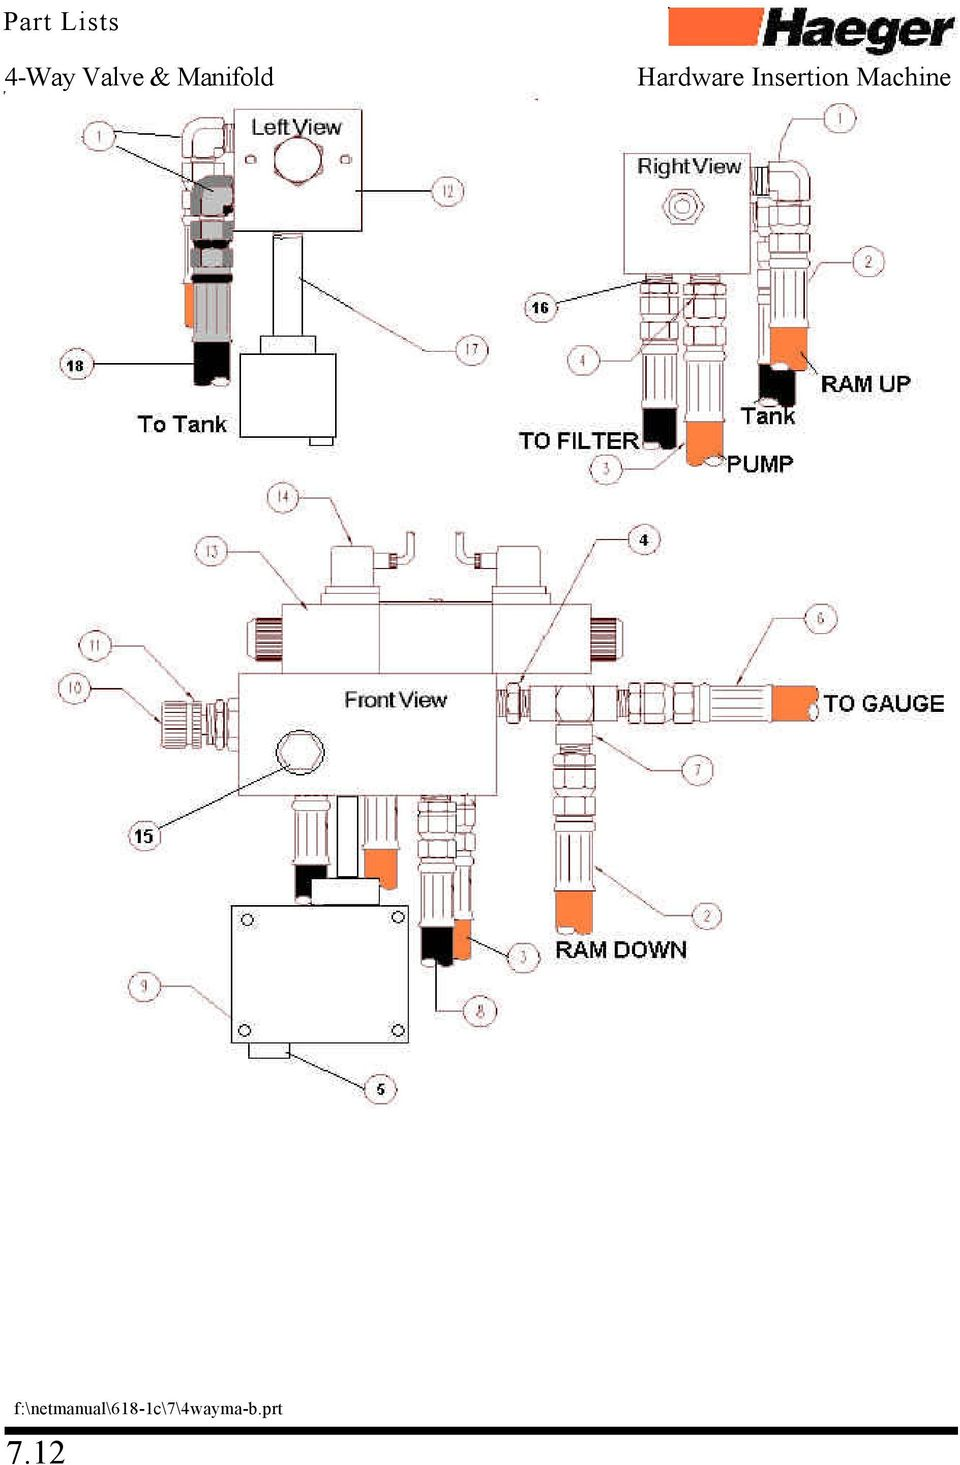 Big Ten Allis Chalmers Parts likewise Simplicity 7112 Tractor Wiring Schematic additionally Mandolin Wiring Diagrams additionally Allis Chalmers D17 Wiring Diagram in addition Ford 1600 Tractor Parts Wiring Diagrams. on 7060 allis chalmers electrical diagram